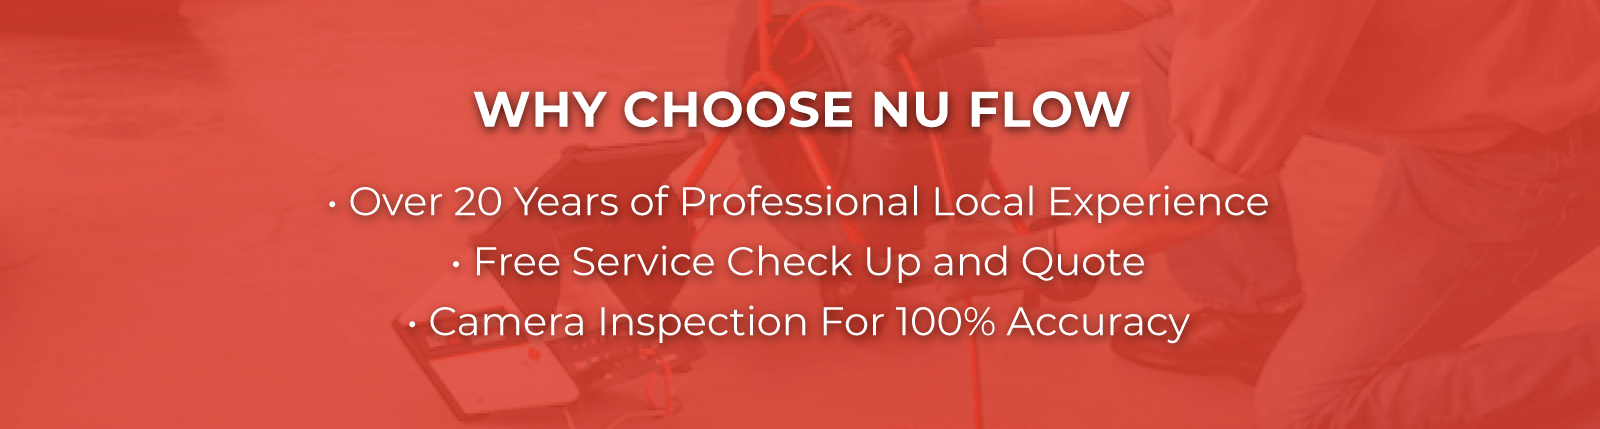 nu flow oklahoma sewer repair 1 Sewer Pipe Replacement Oklahoma City, OK